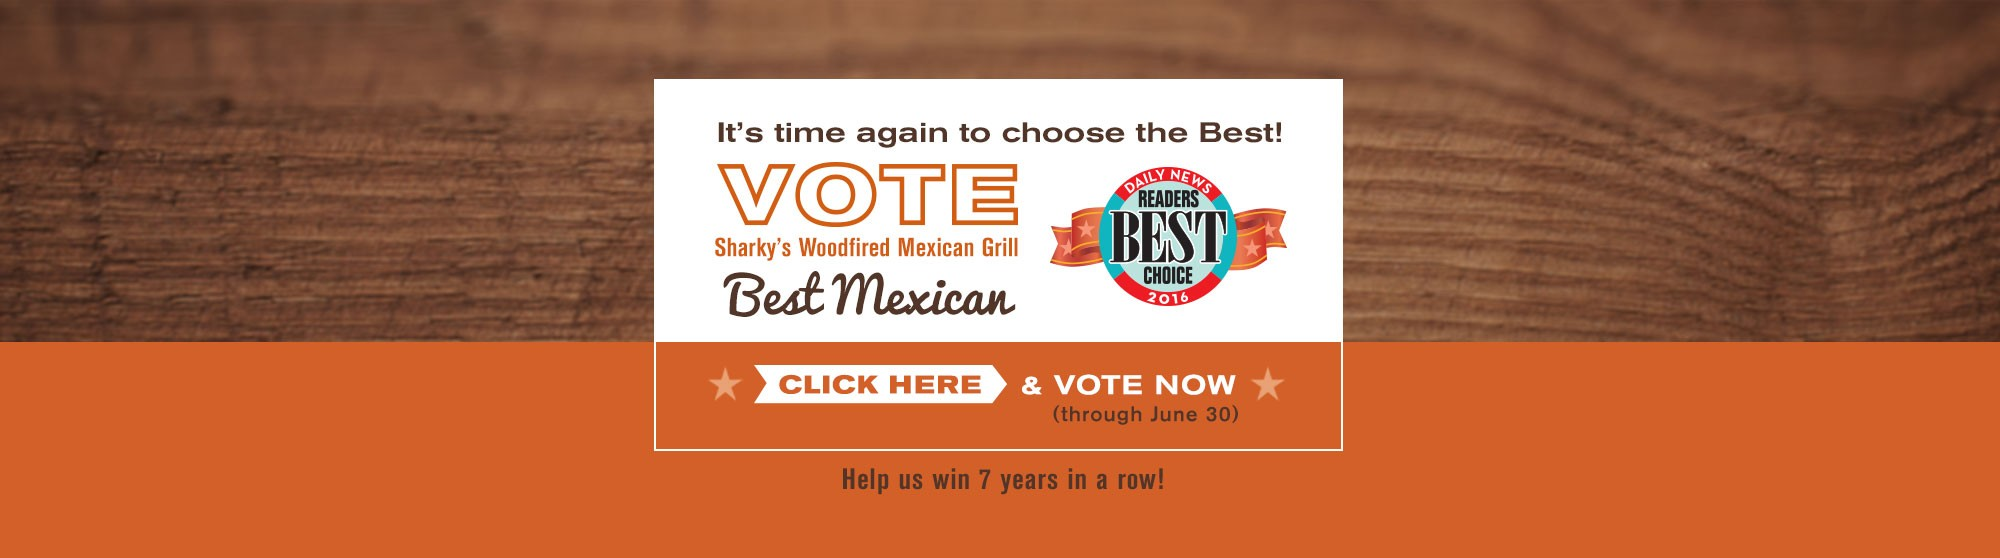 Vote Sharky's Woodfired Mexican Grill for Best Mexican